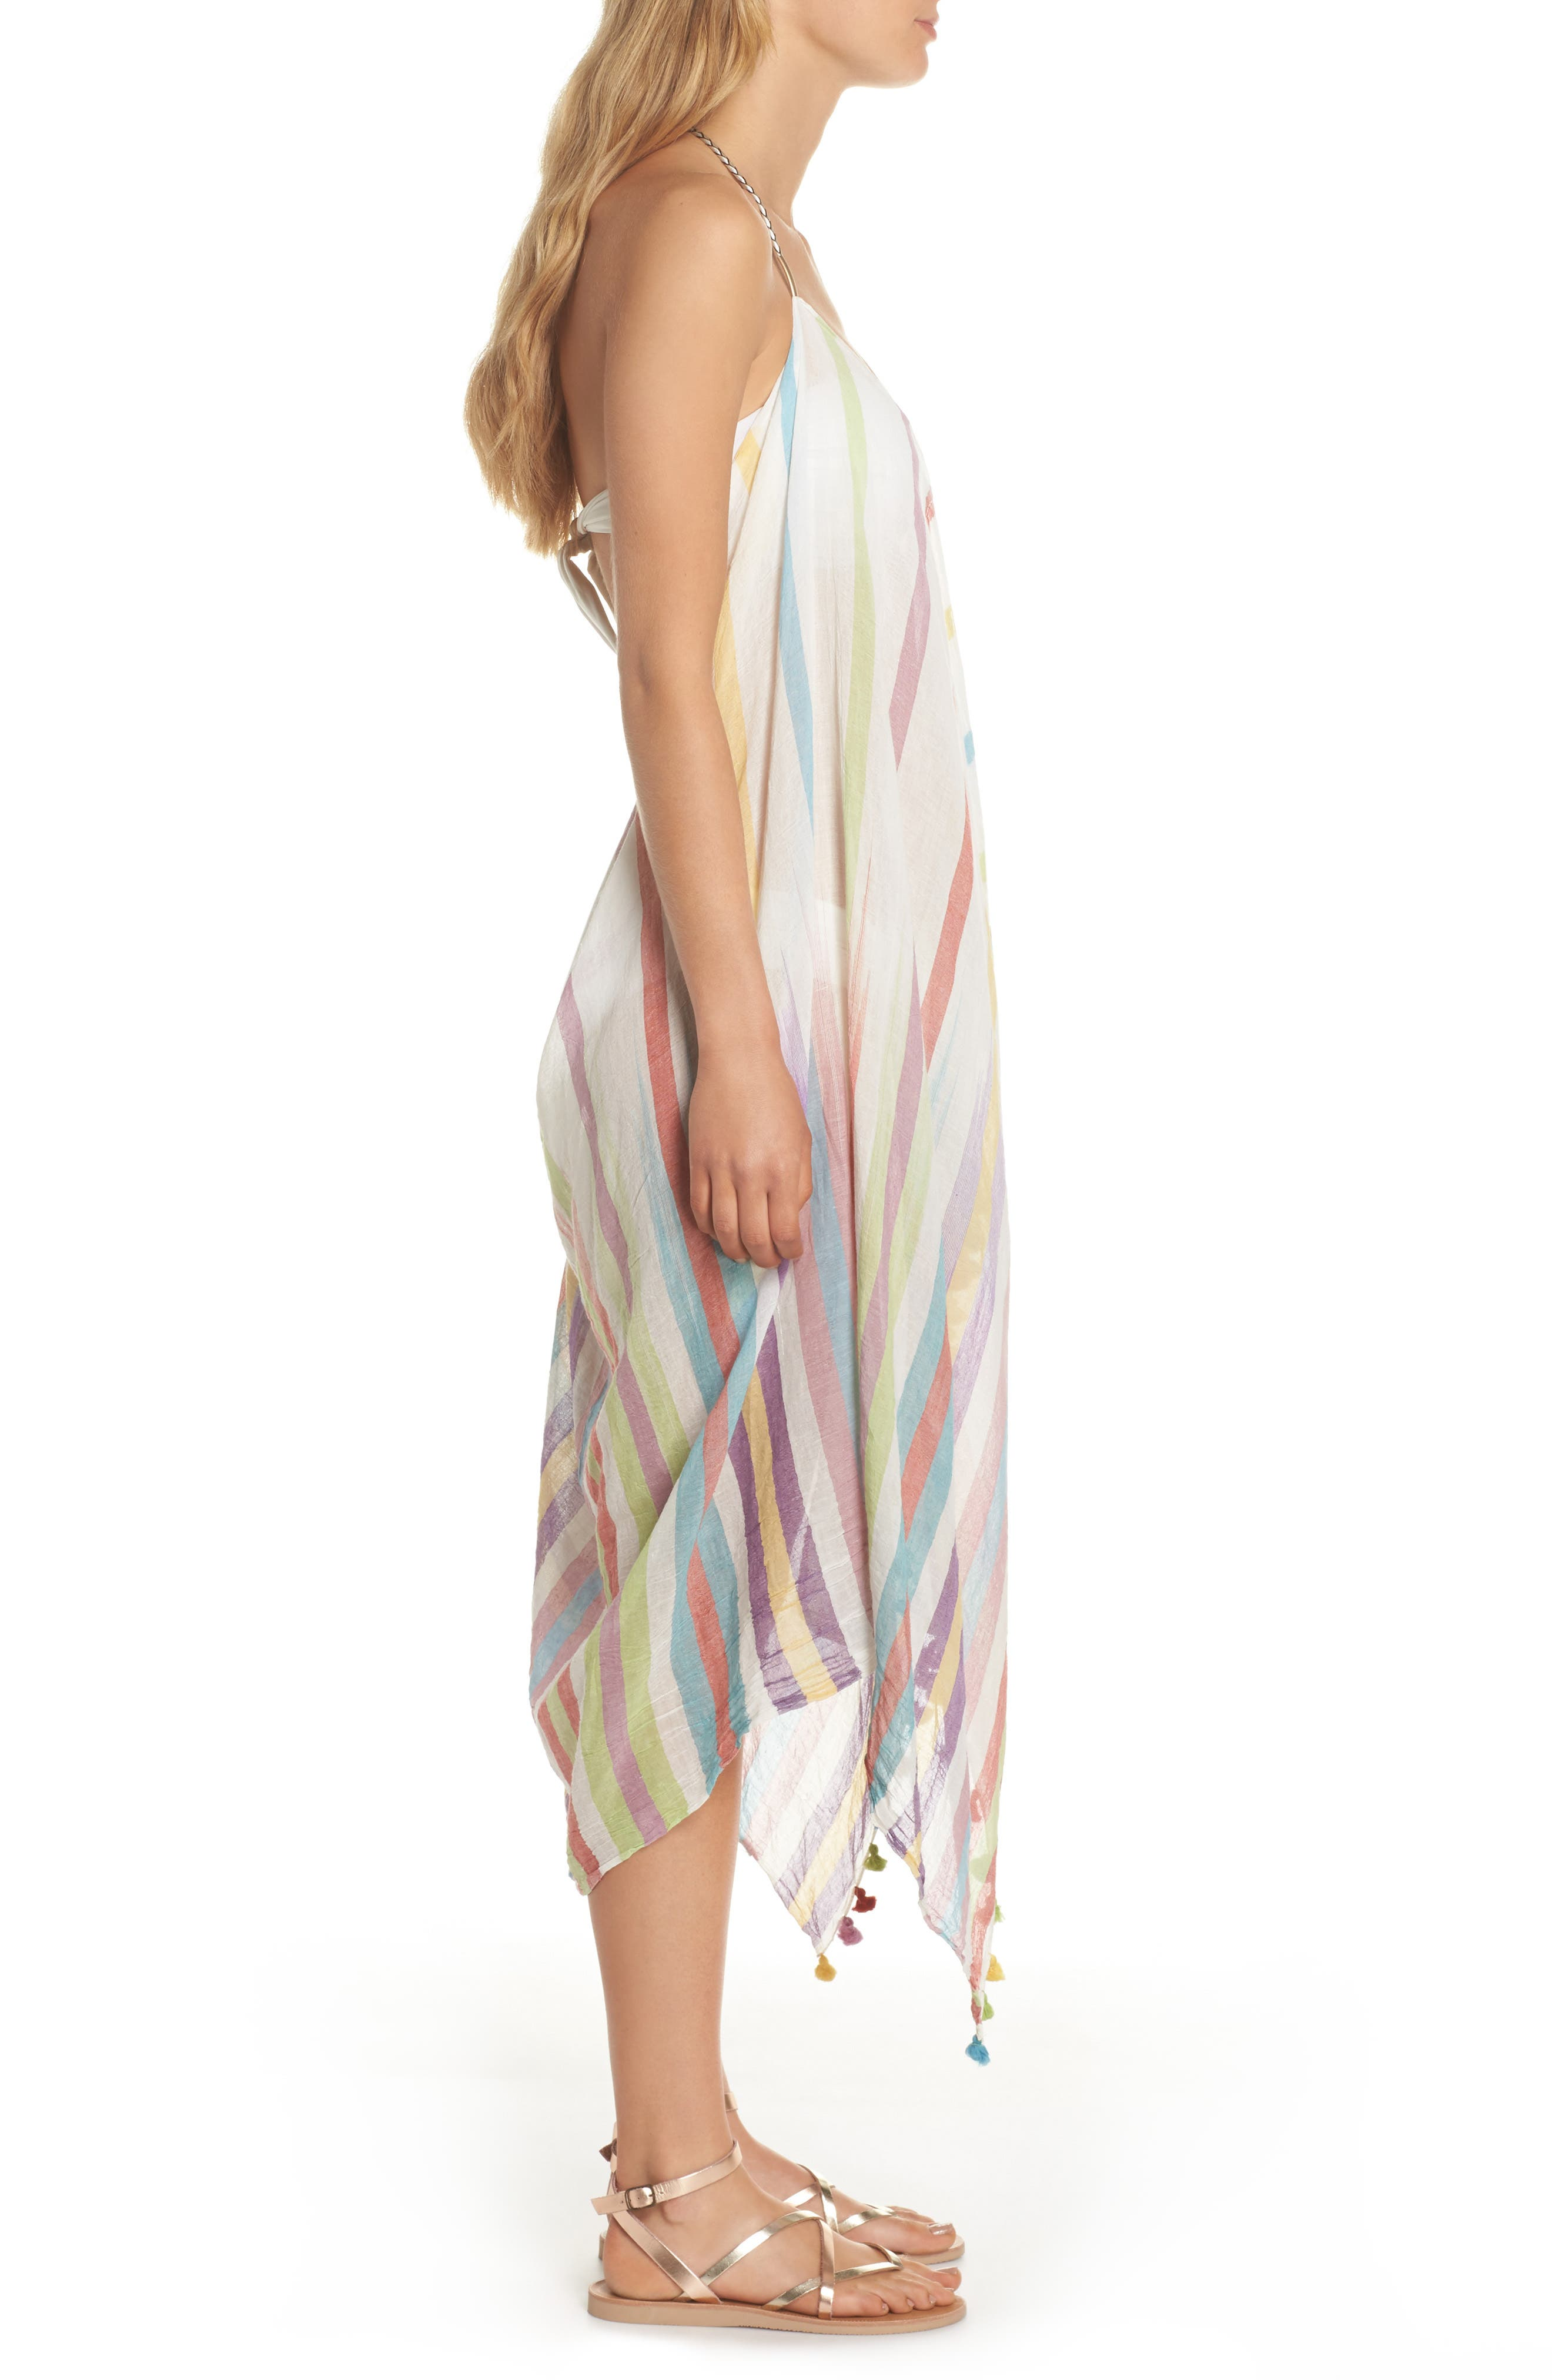 Pool Party Beach to Street Cover-Up Dress,                             Alternate thumbnail 3, color,                             Rnb